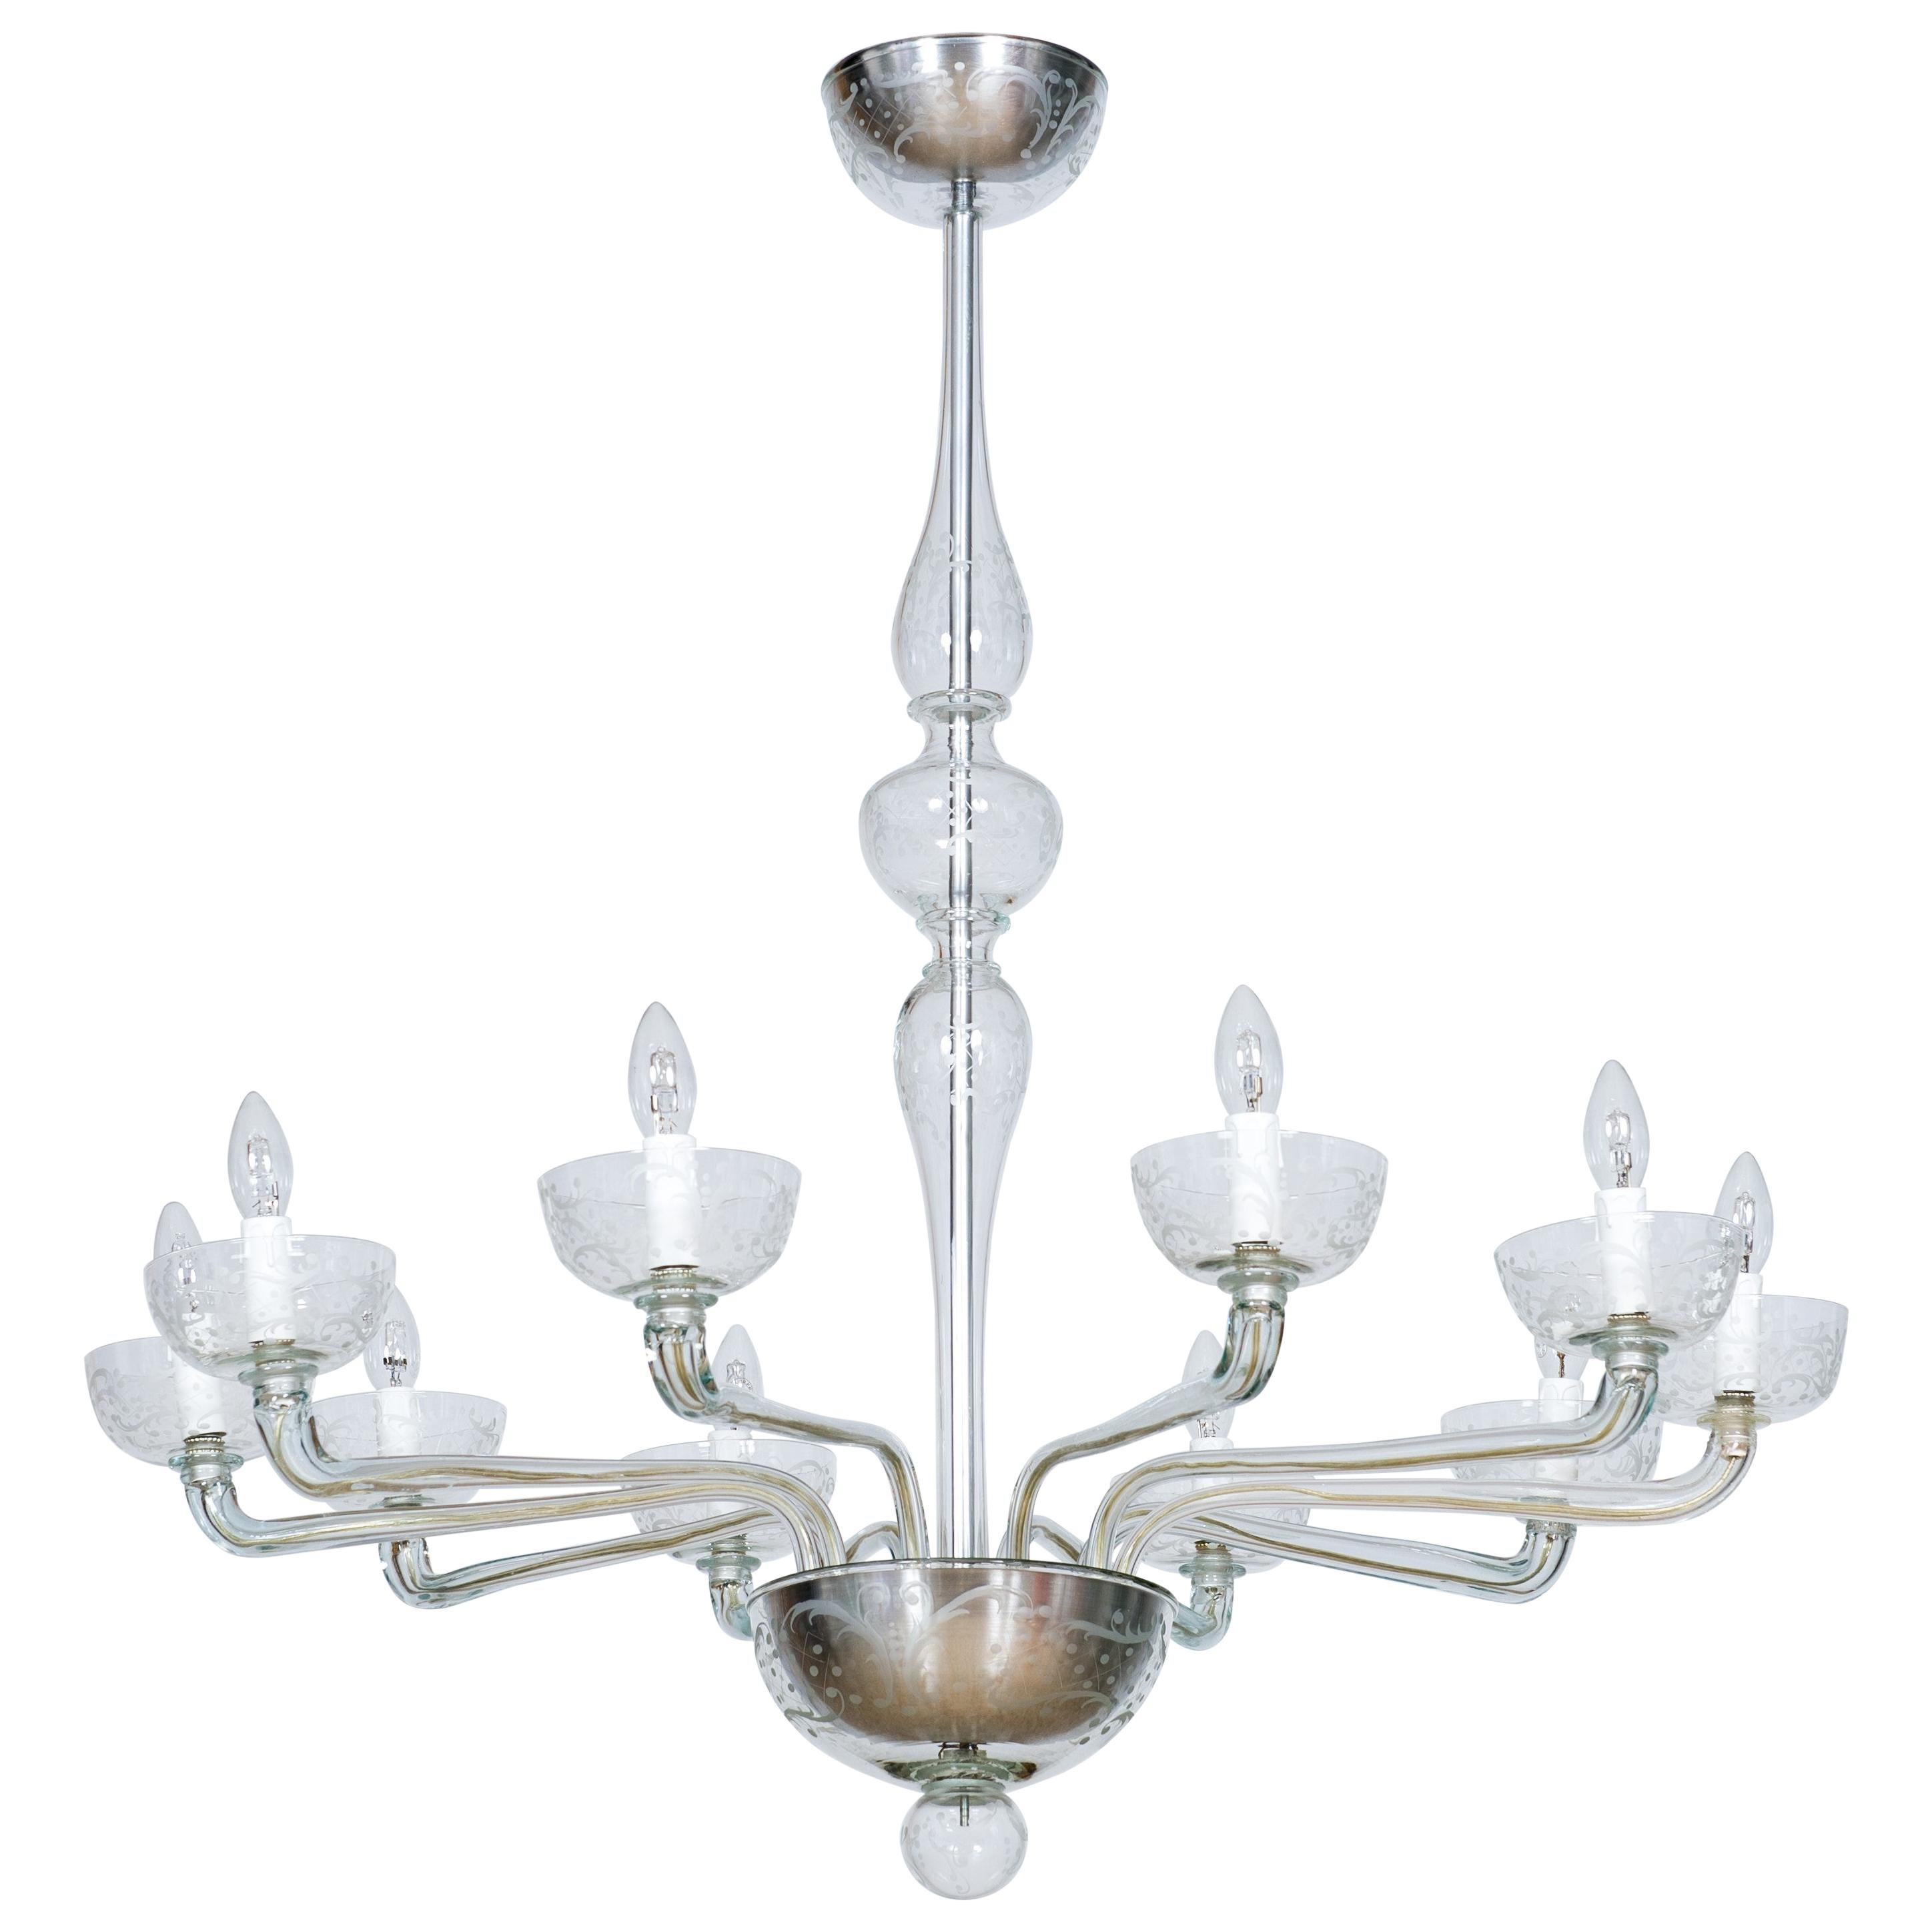 Pair of Deco Chandeliers Hand Carved Clear Color in Blown Murano Glass, Italy